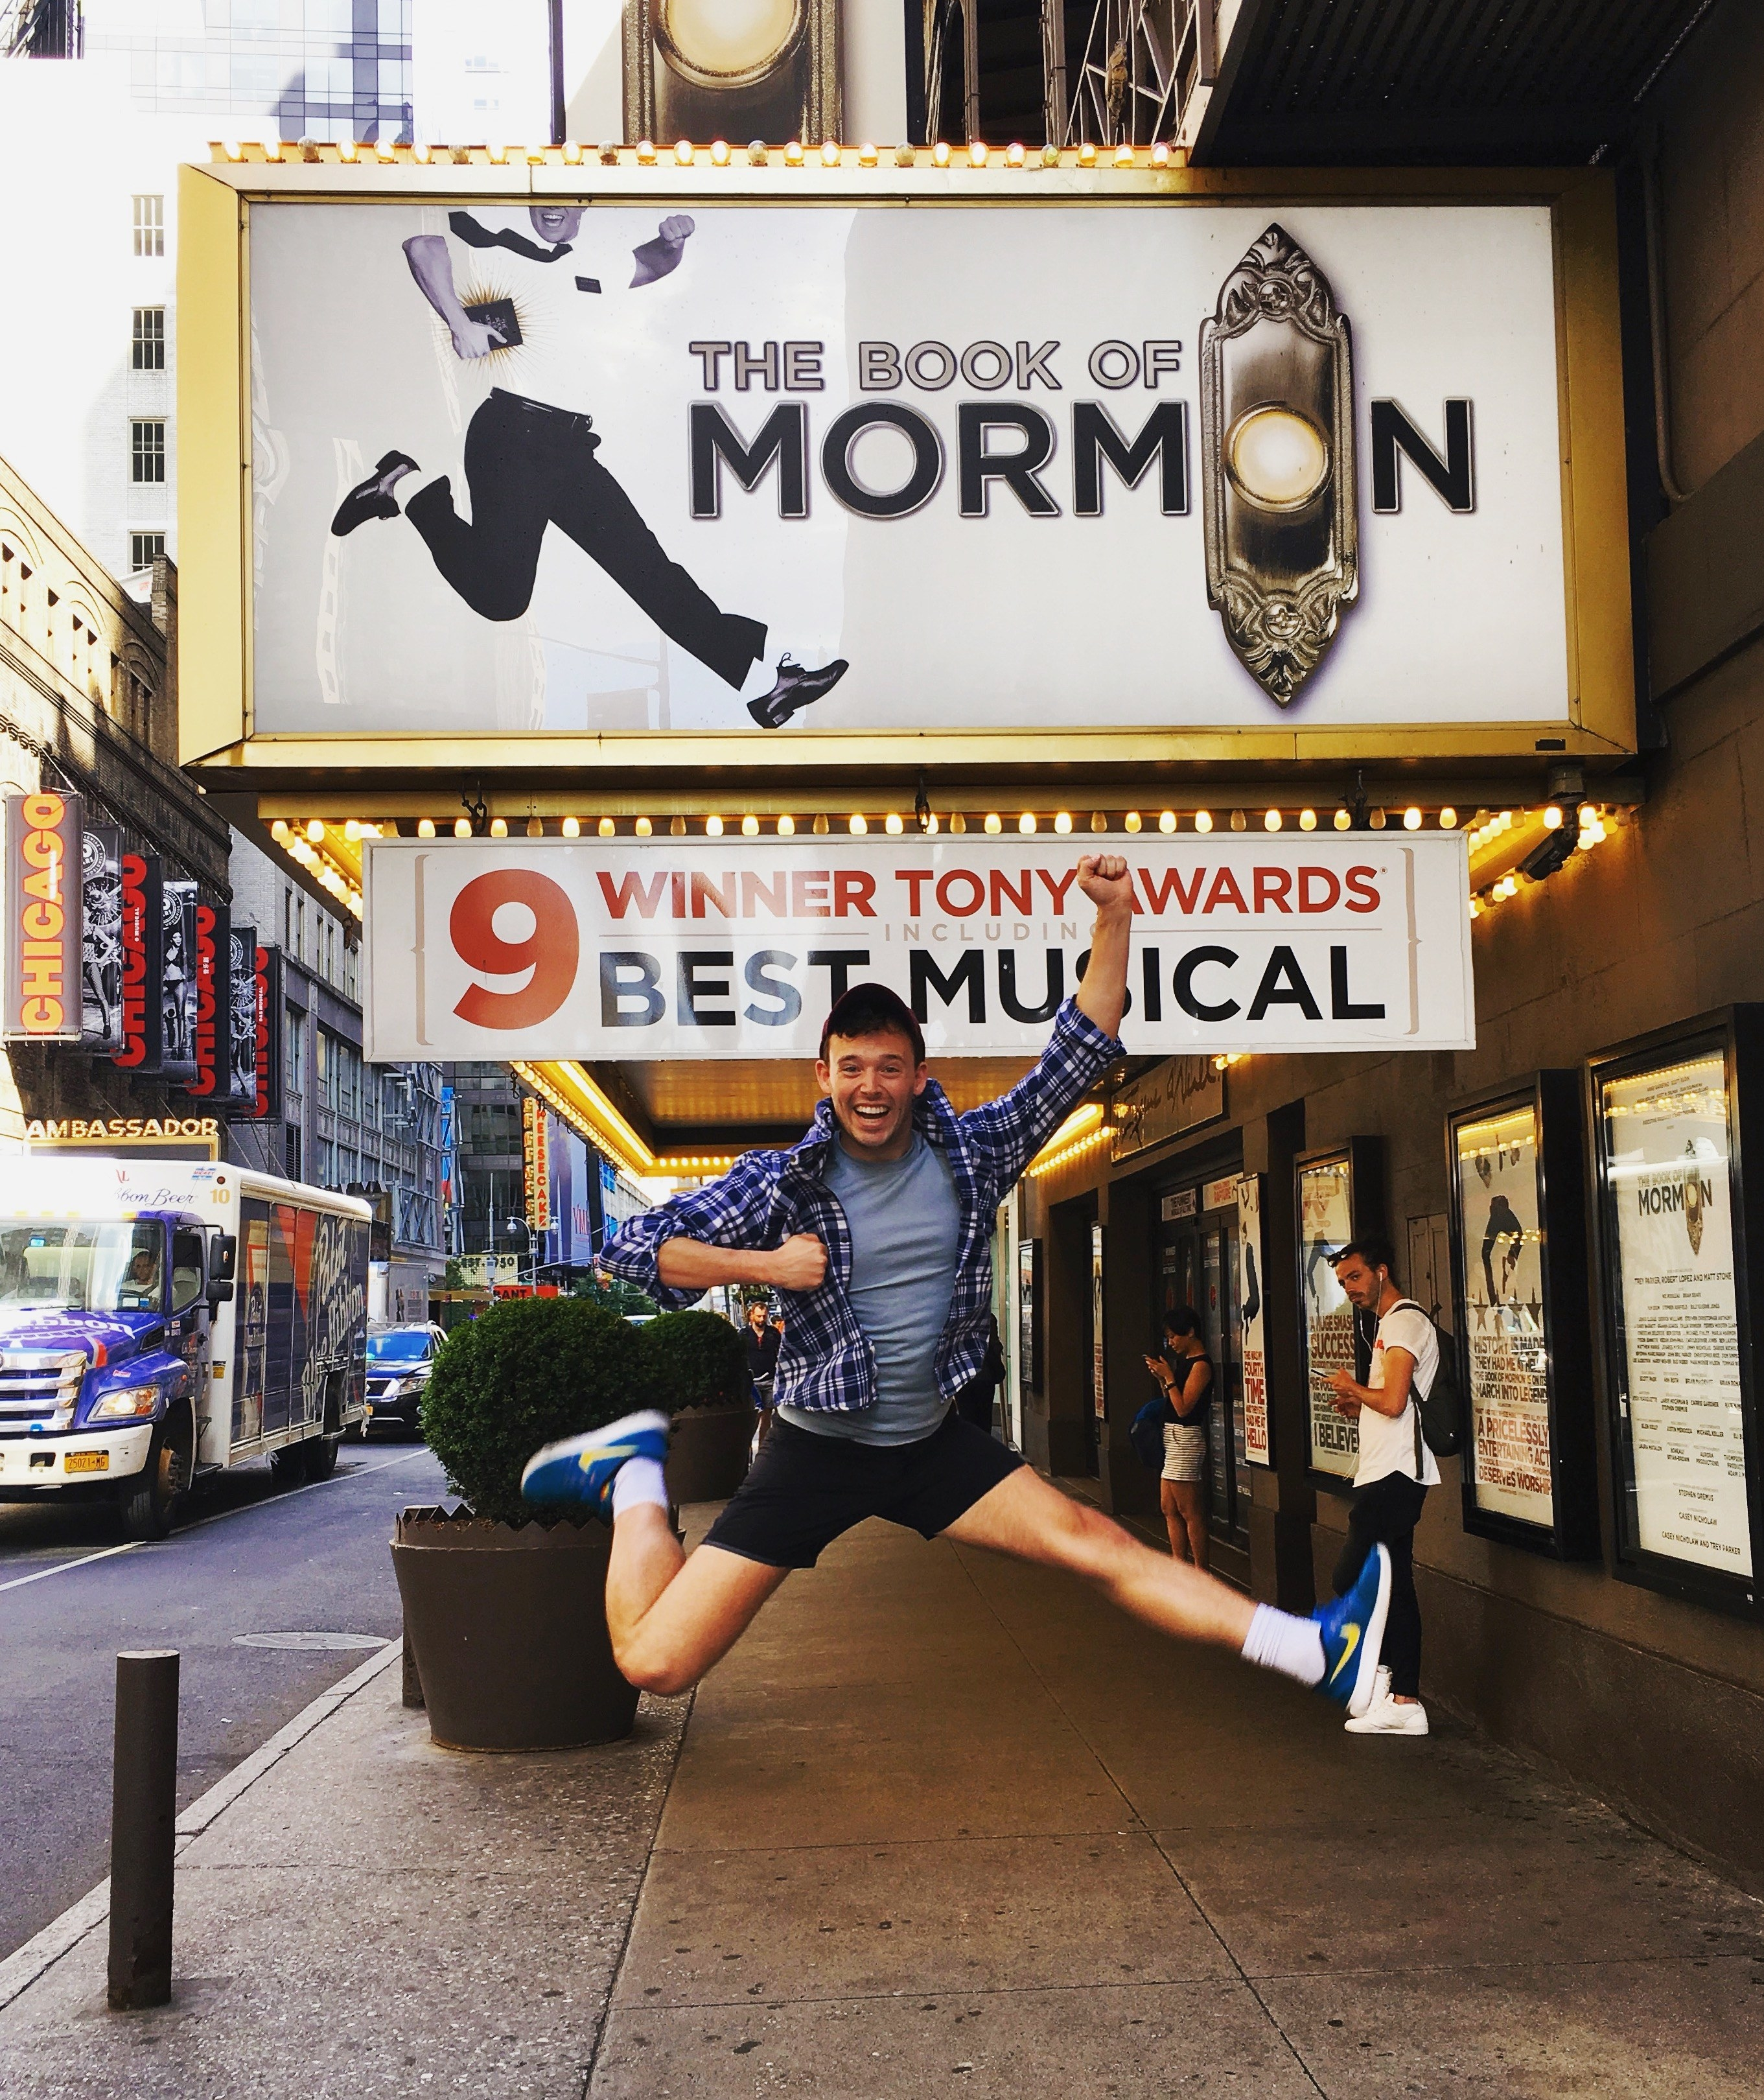 """JJ jumping in front of """"The Book of Mormon"""" theater marquee"""